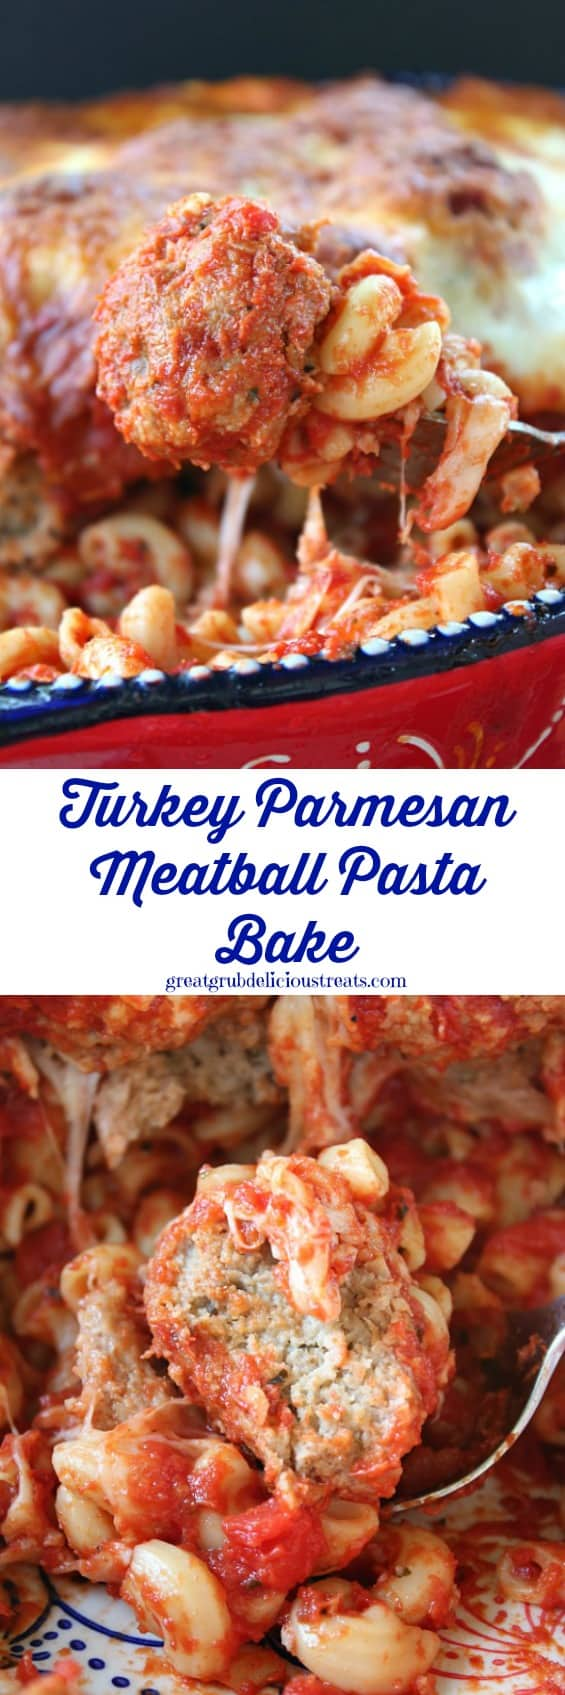 Turkey Parmesan Meatball Pasta Bake